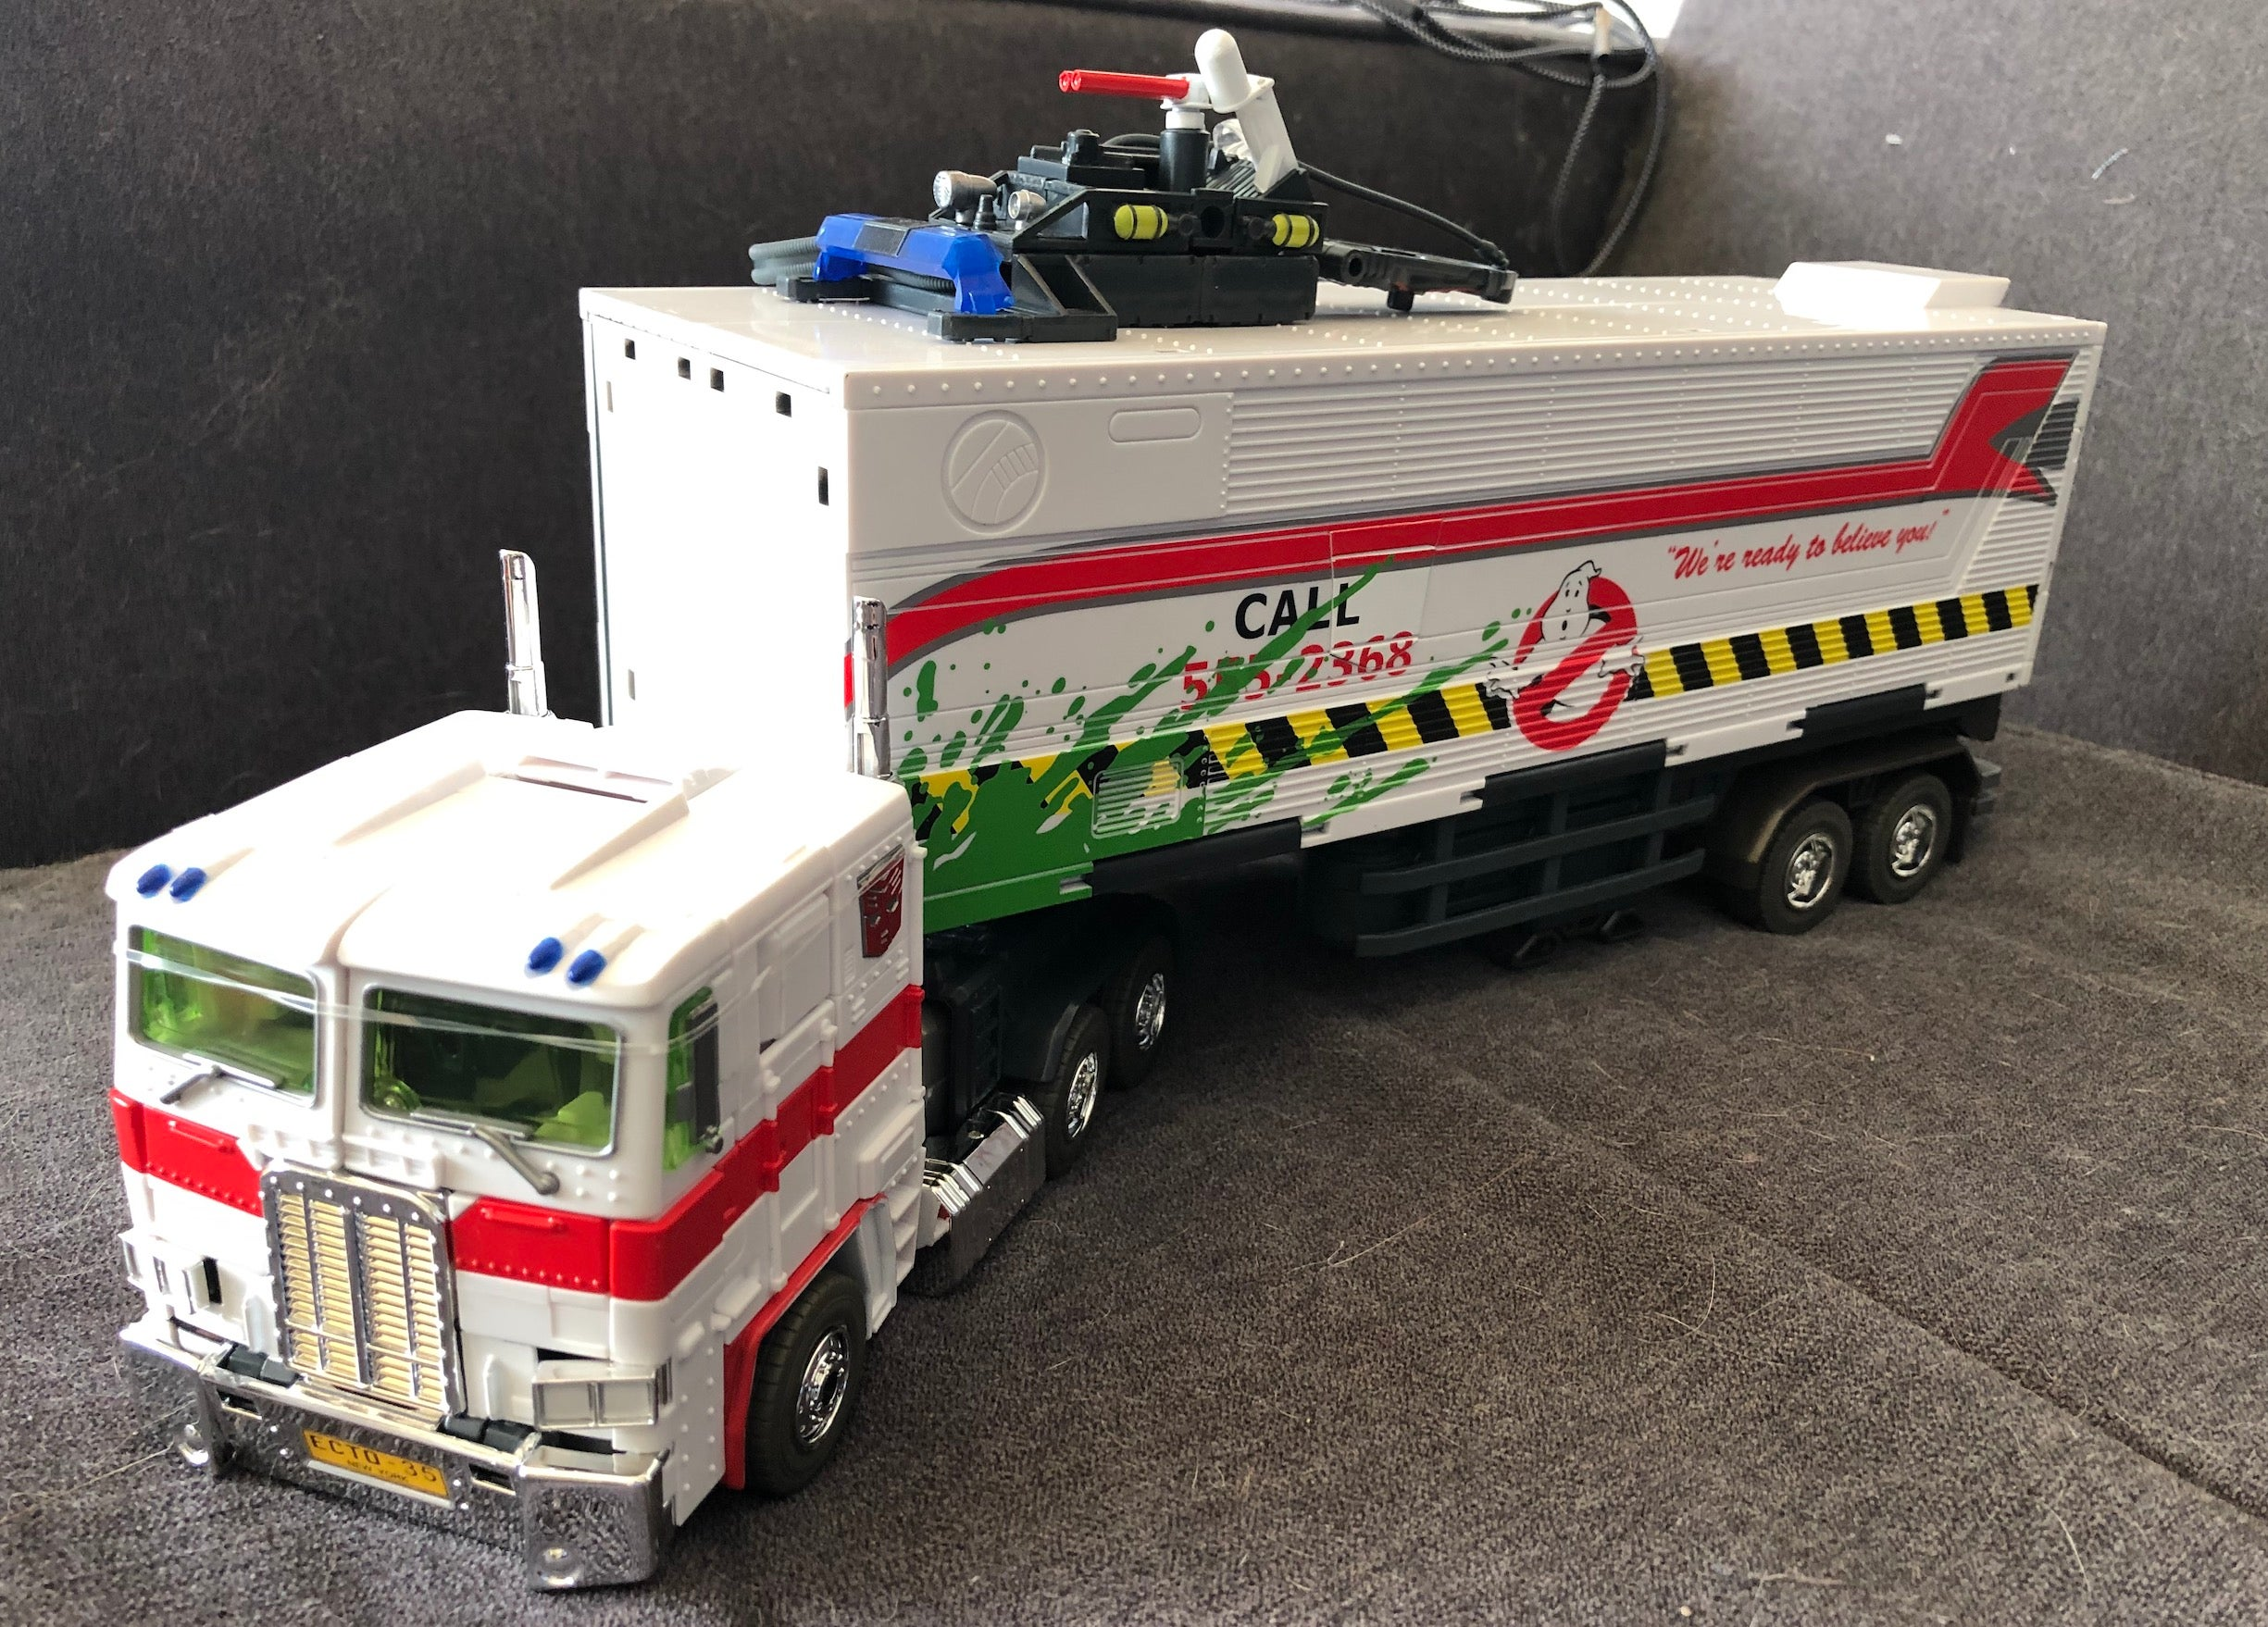 This Optimus Prime Ghostbusters Toy Is Too Much Fun